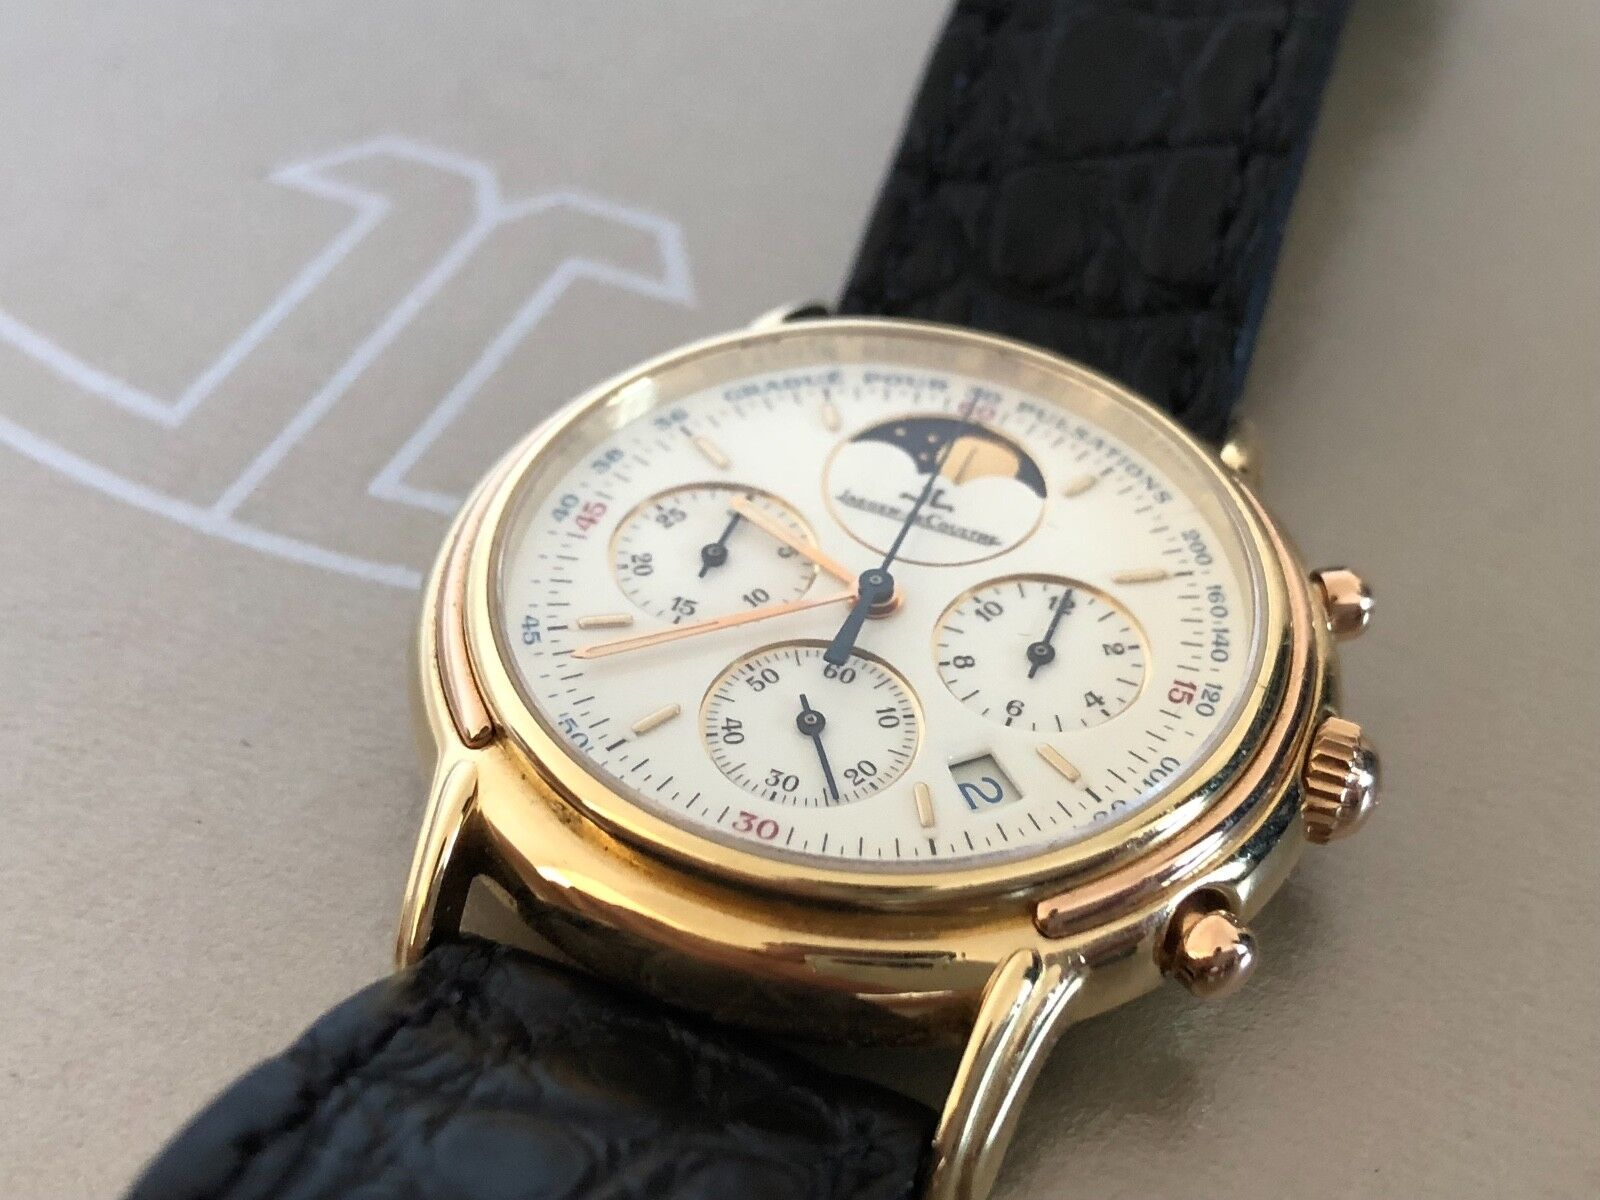 Jaeger LeCoultre Odysseus 18k 750 gold UK Patek Philippe Style in Mint Condition - watch picture 1